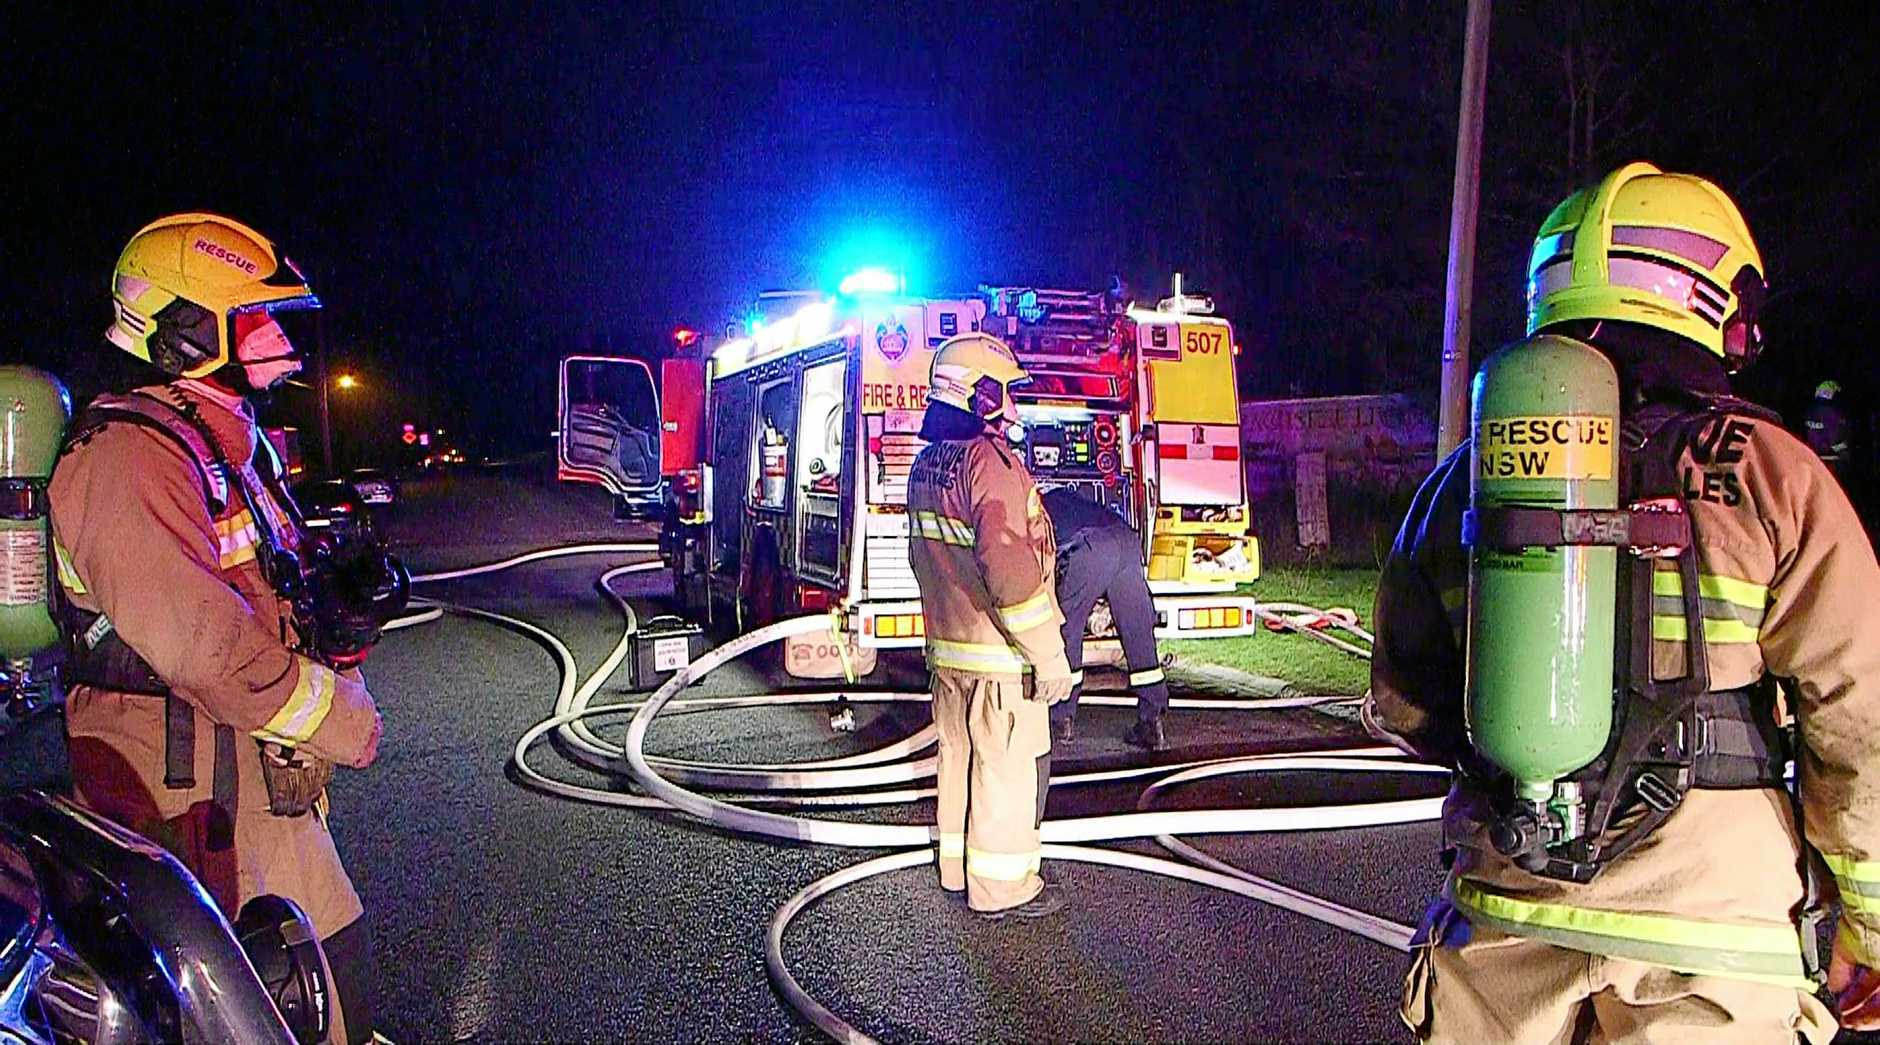 Fire and Rescue NSW crews respond to a house fire on Thursday night.